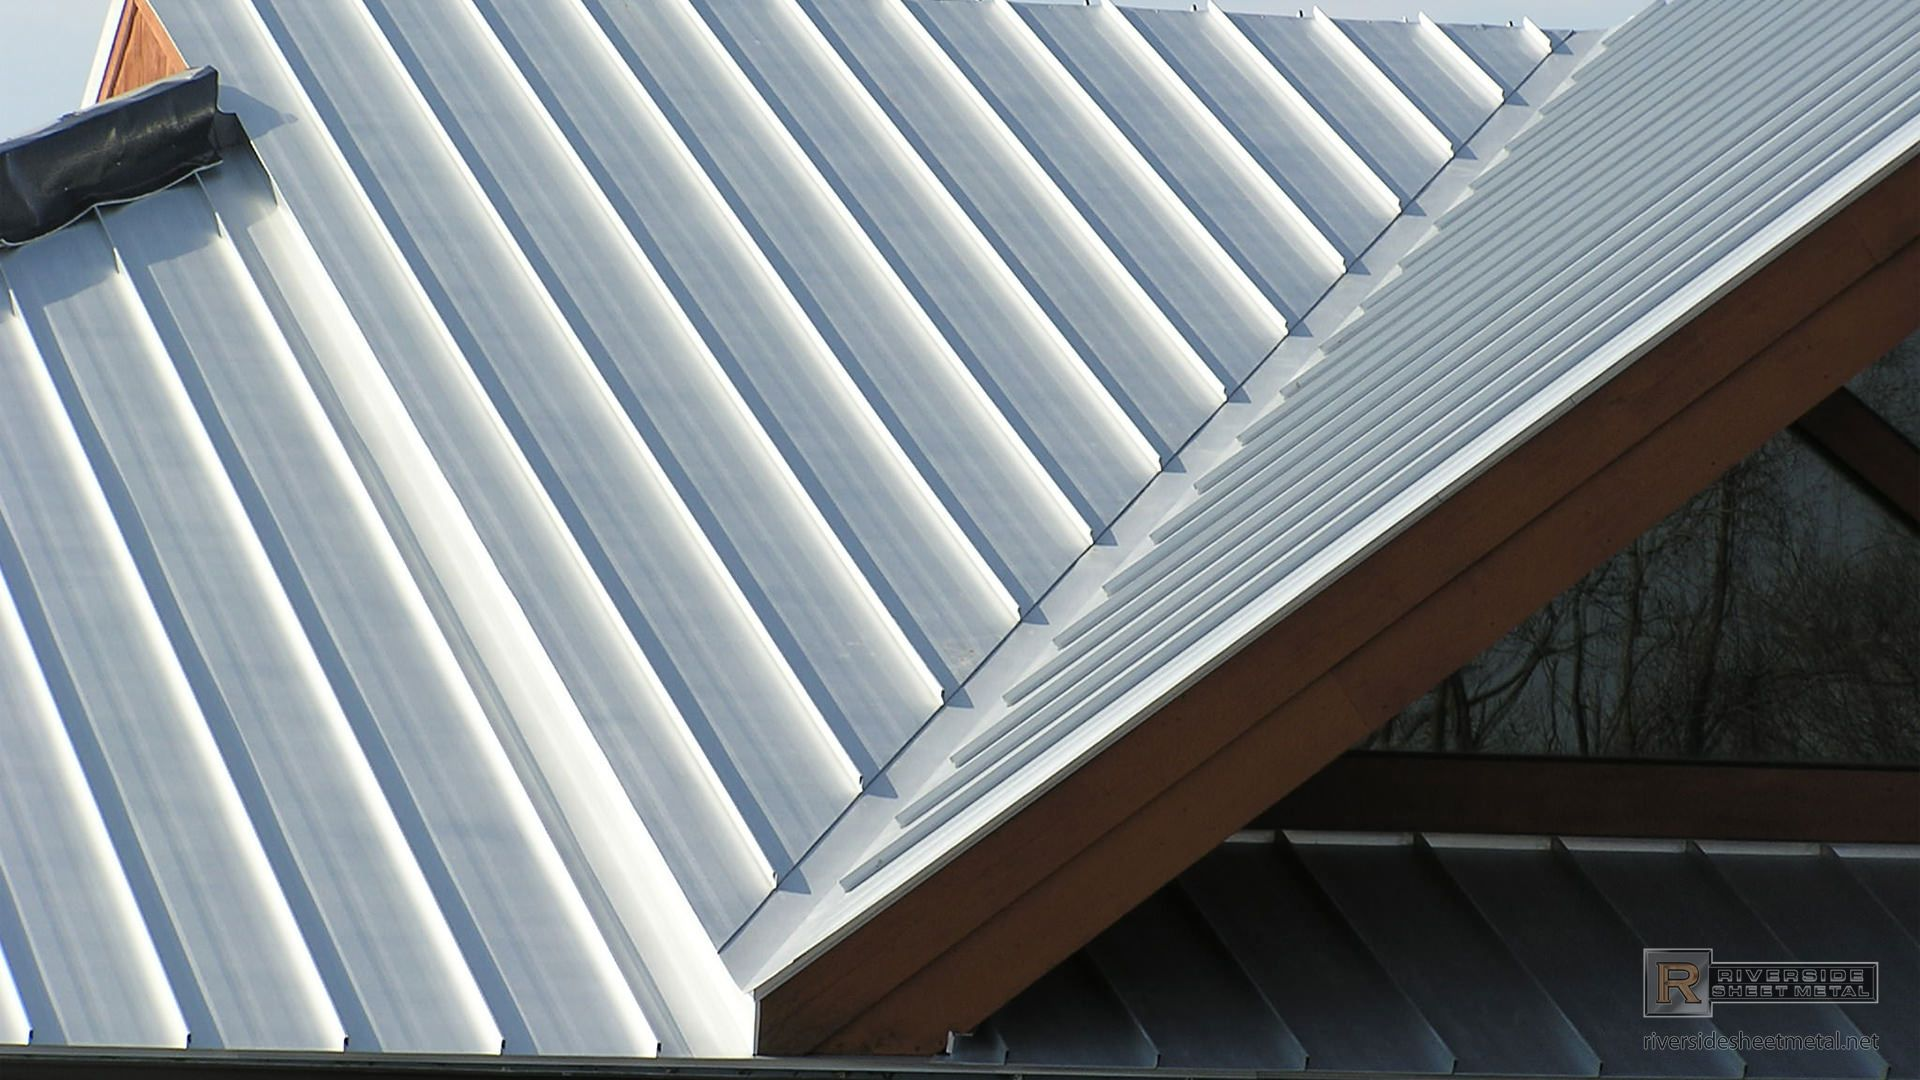 Galvalume Metal Roof Victory Metal Roofing In Easley Sc Steel Roof Panels Metal Roof Panels Corrugated Metal Roof Panels